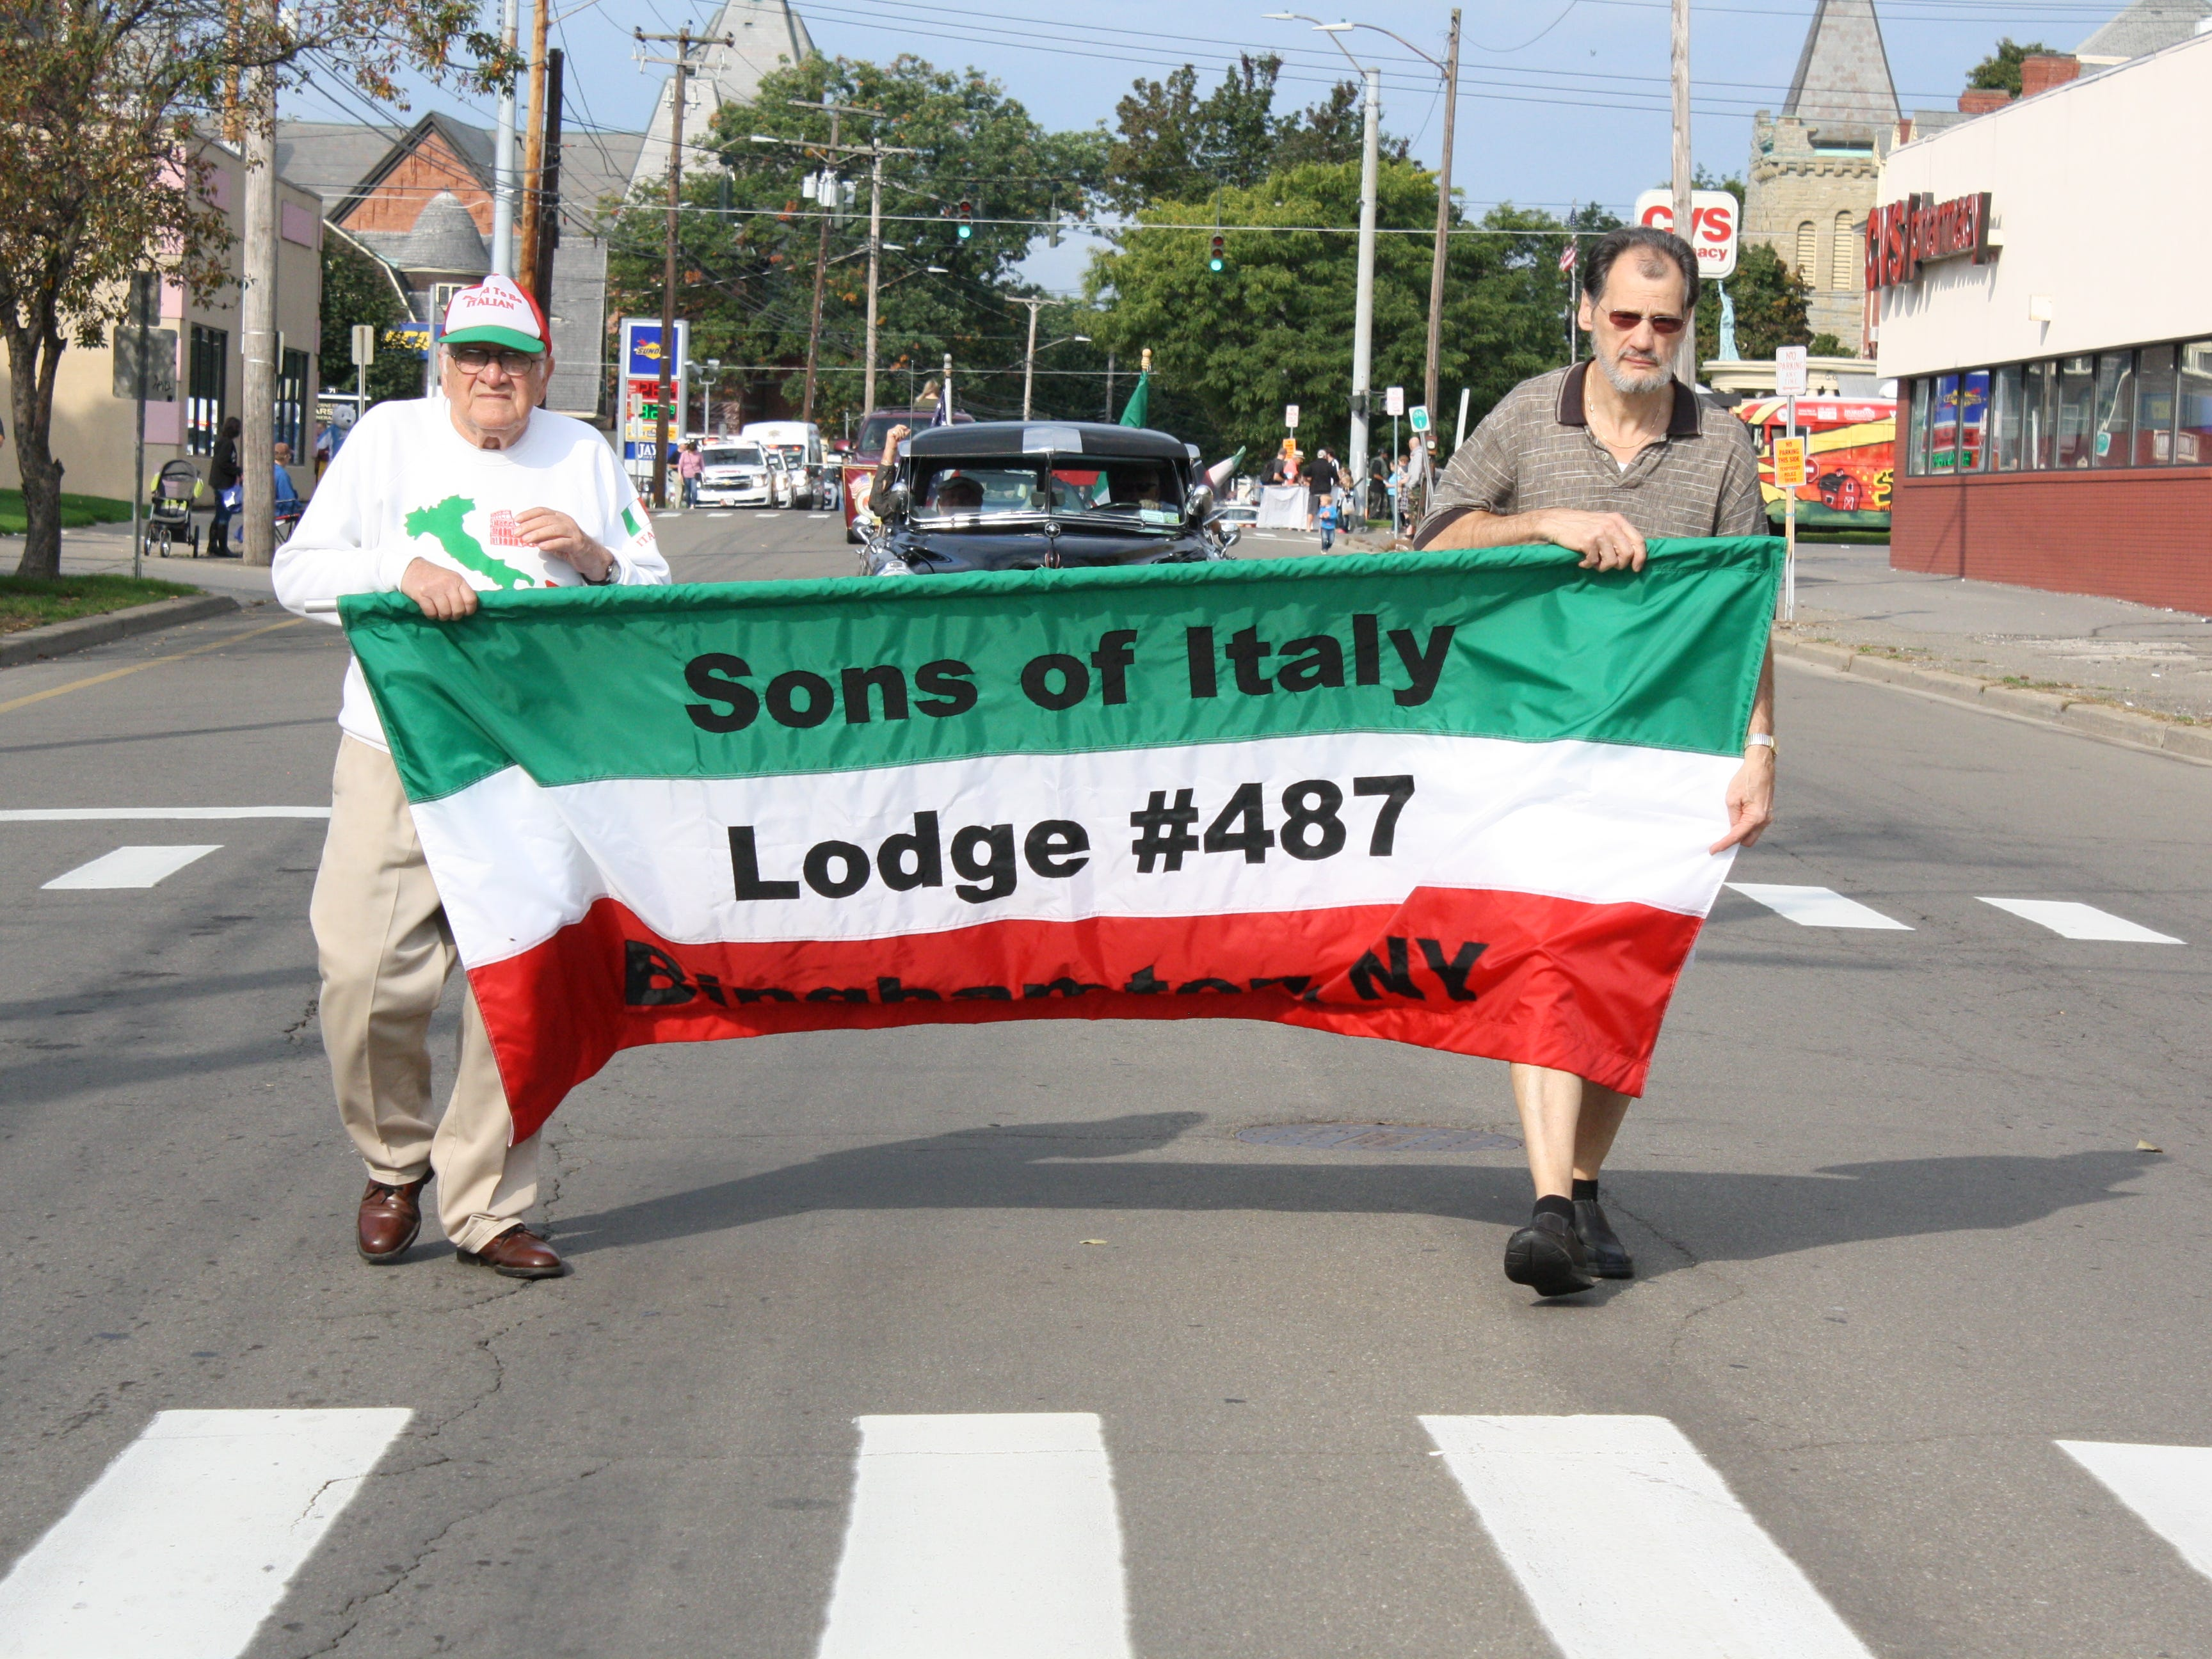 Columbus Day festivities in Binghamton began with an Italian flag raising outside of Binghamton City Hall Monday morning, followed by the annual Parade and Tournament of Marching Bands. An Italian Festival was held on Water Street into the afternoon.